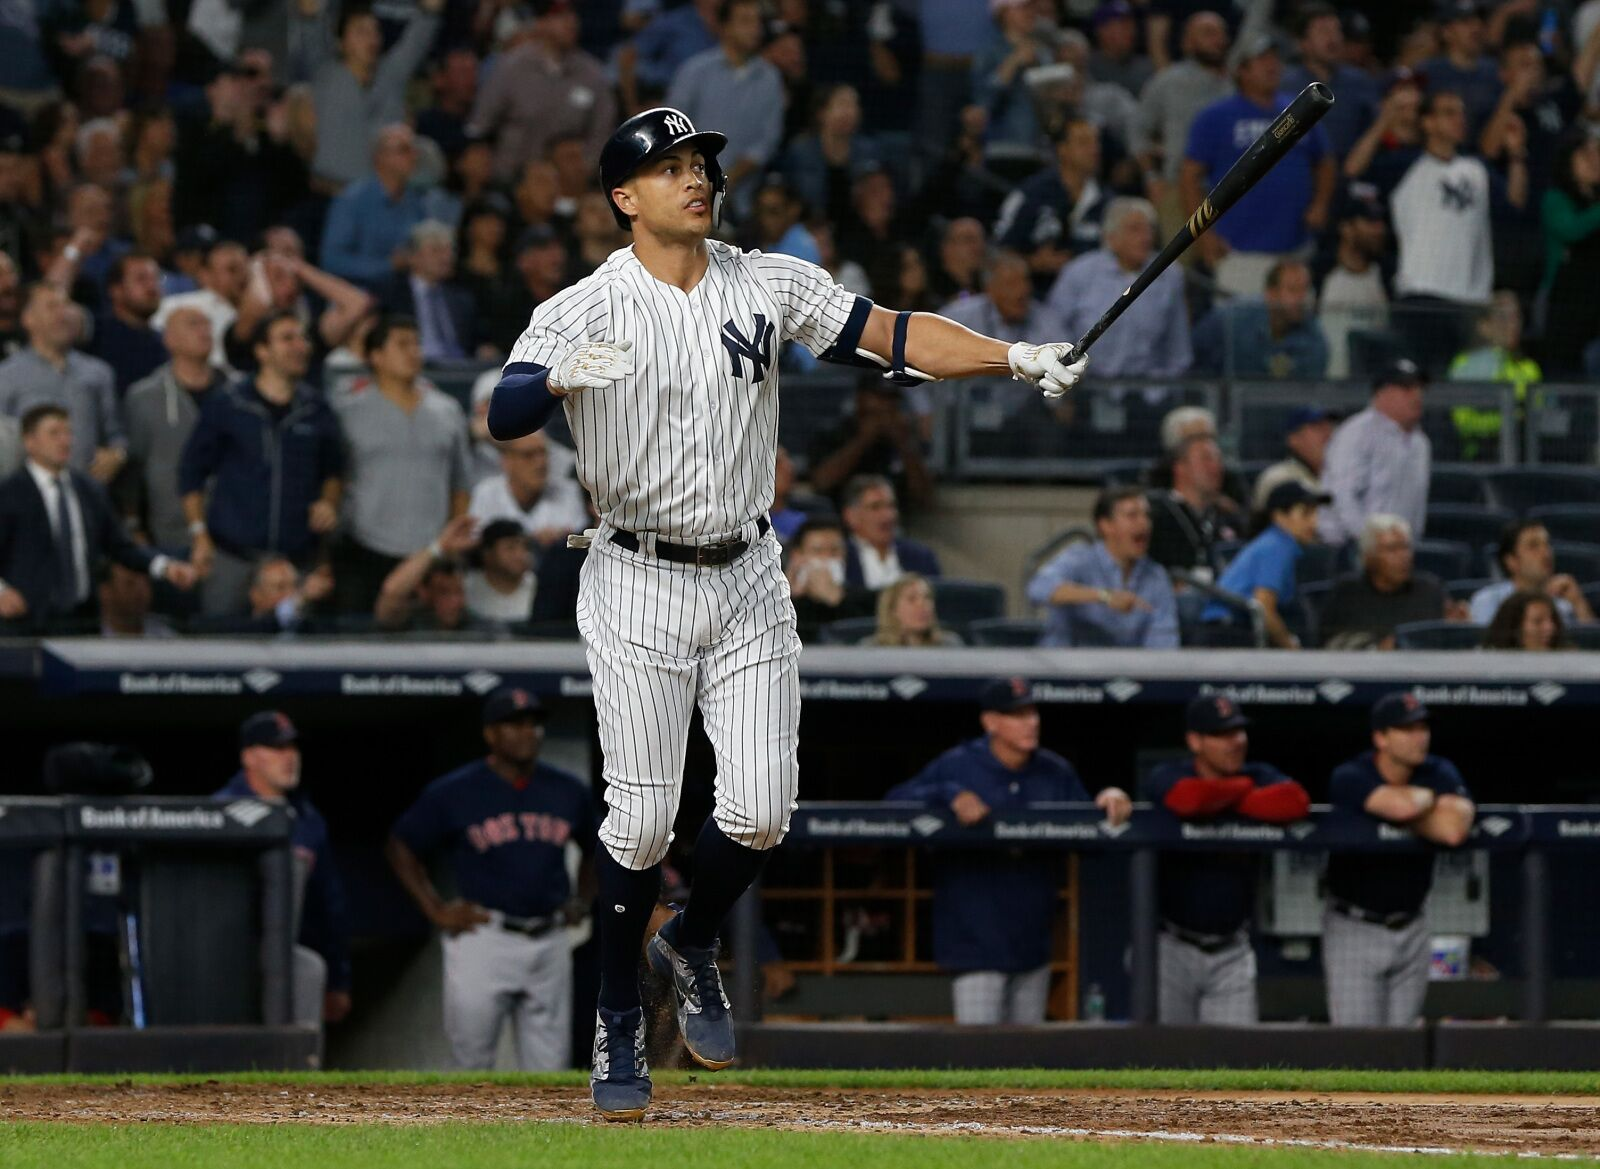 c906642c07e Yankees break single season home run record with 265 and 266